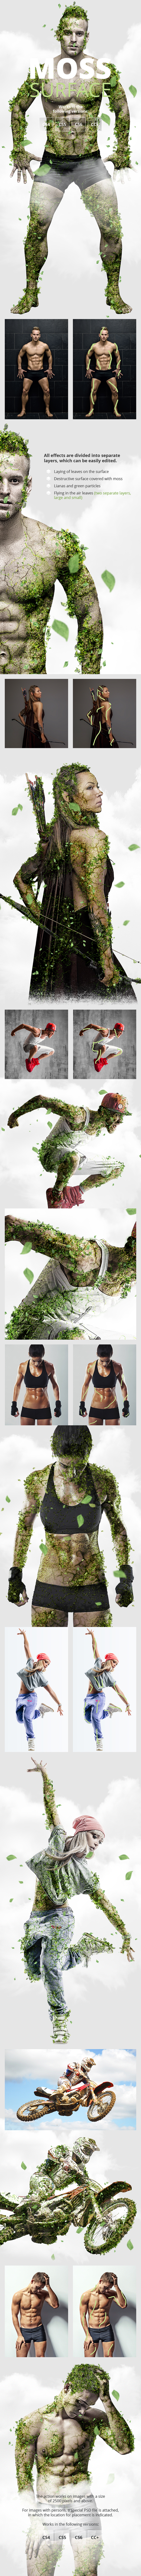 Moss Photoshop Action - Photo Effects Actions